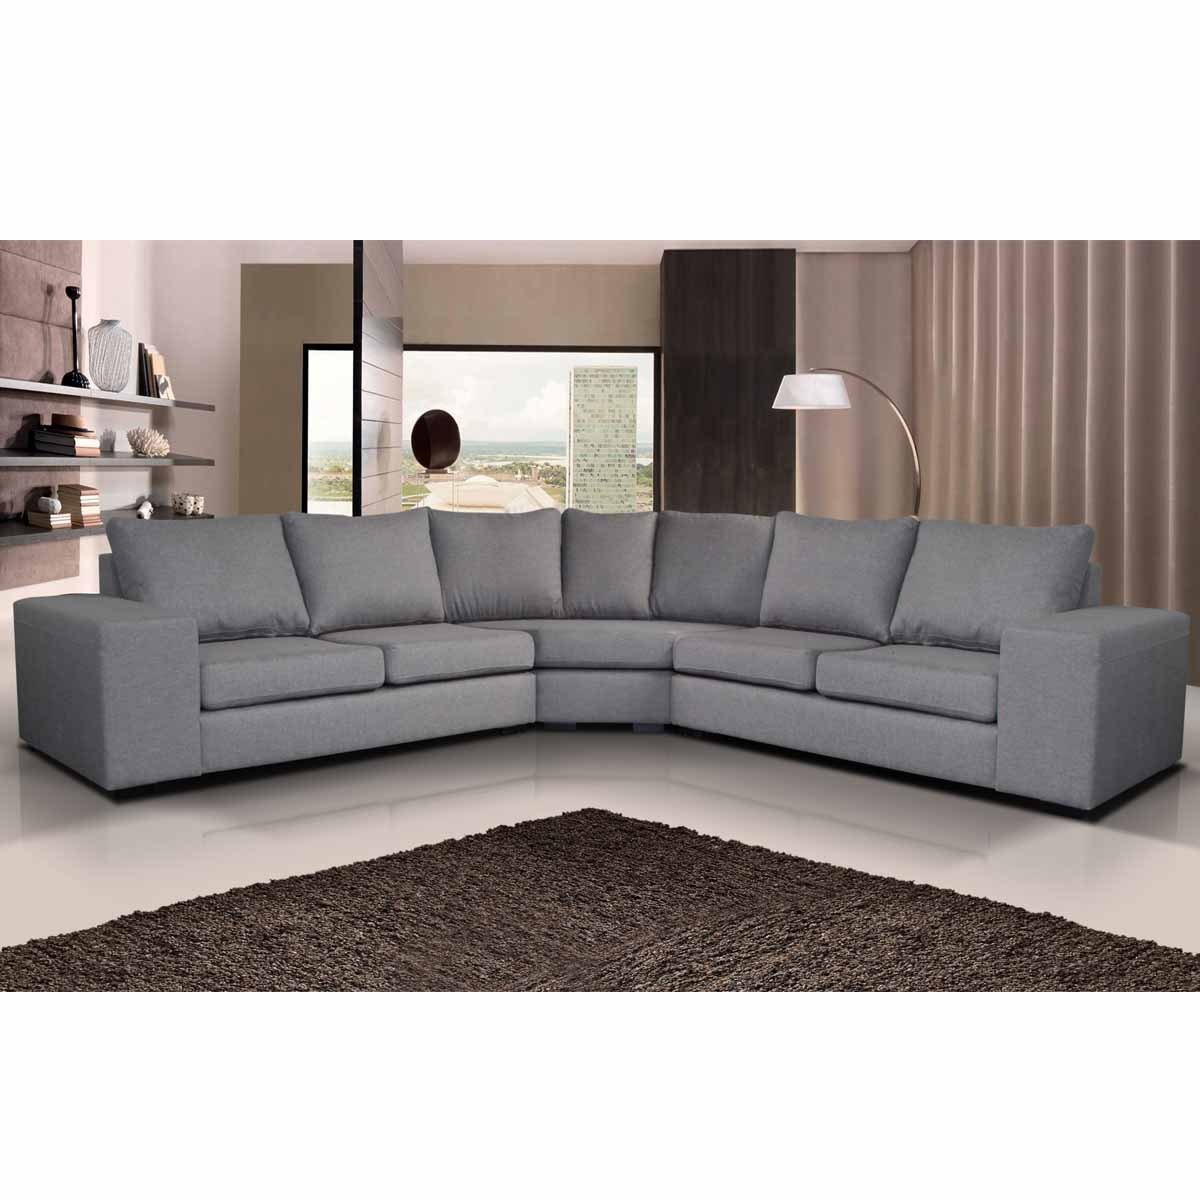 canape angle gris tissu royal sofa id e de canap et. Black Bedroom Furniture Sets. Home Design Ideas